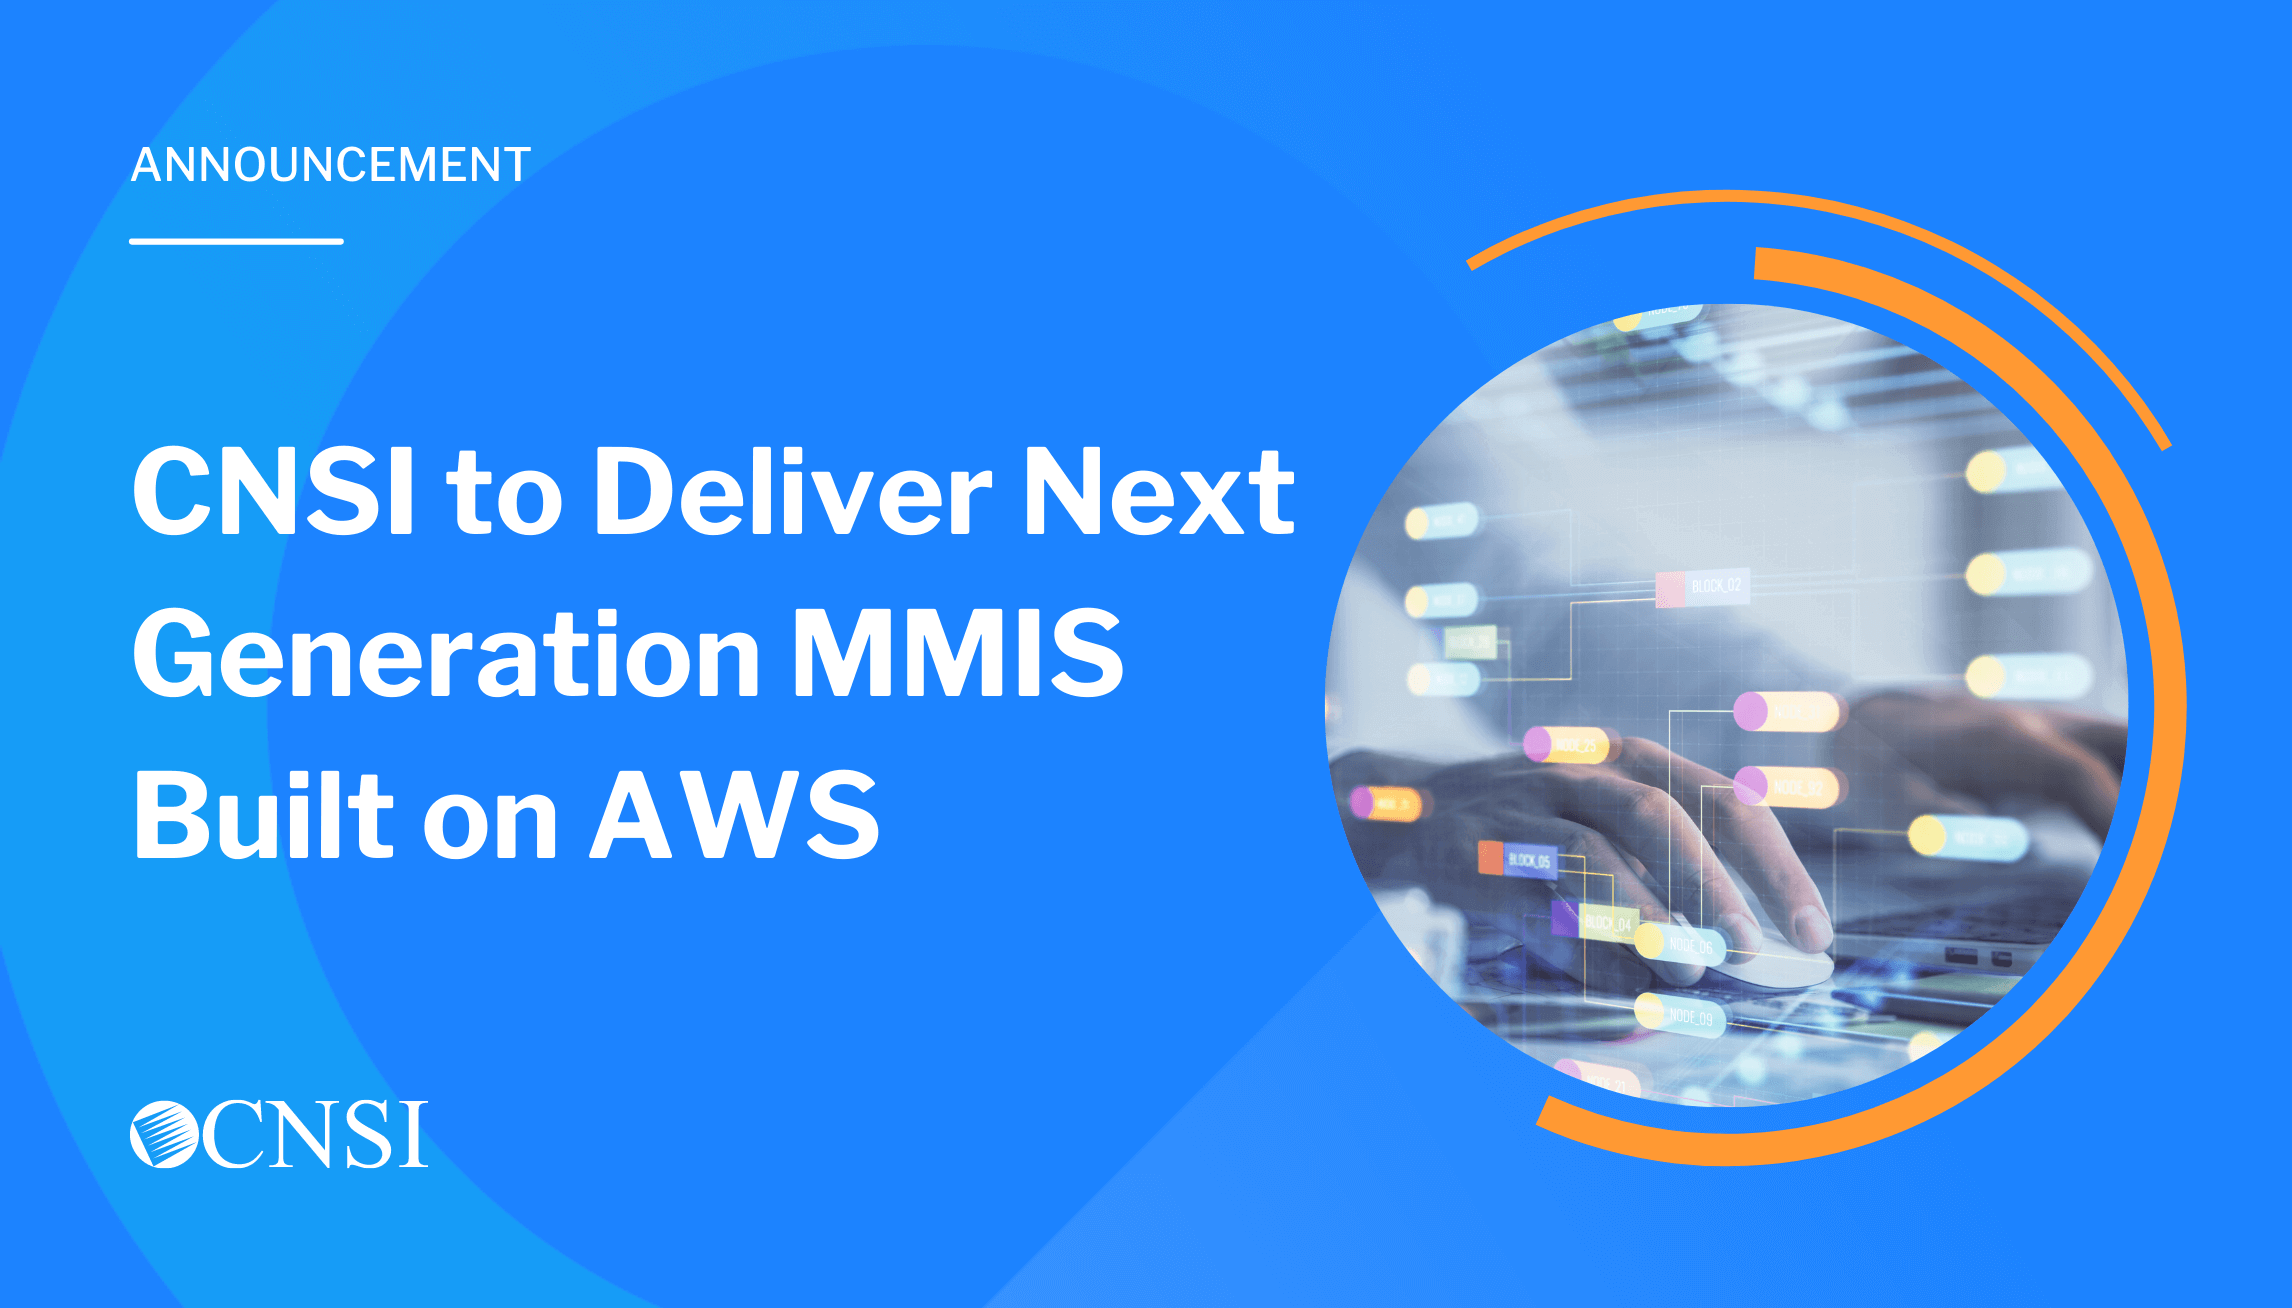 CNSI to Deliver Next Generation MMIS Built on AWS